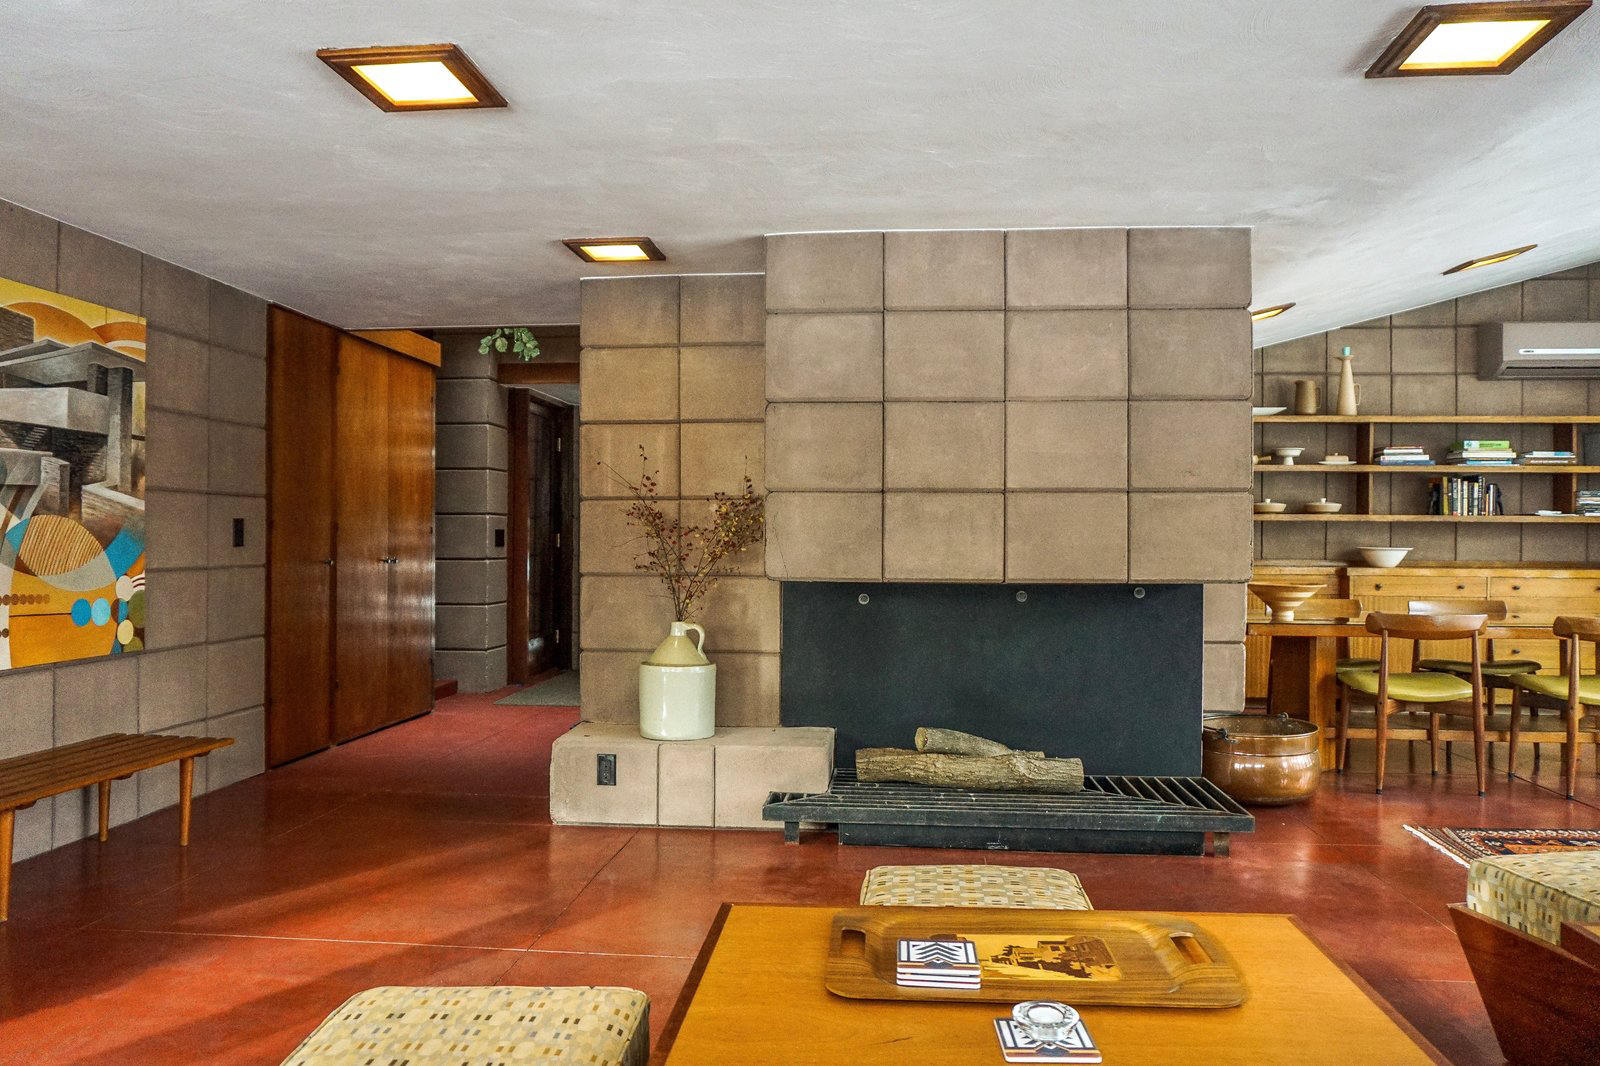 Frank Lloyd Wright's Eppstein House in Michigan is available to rent